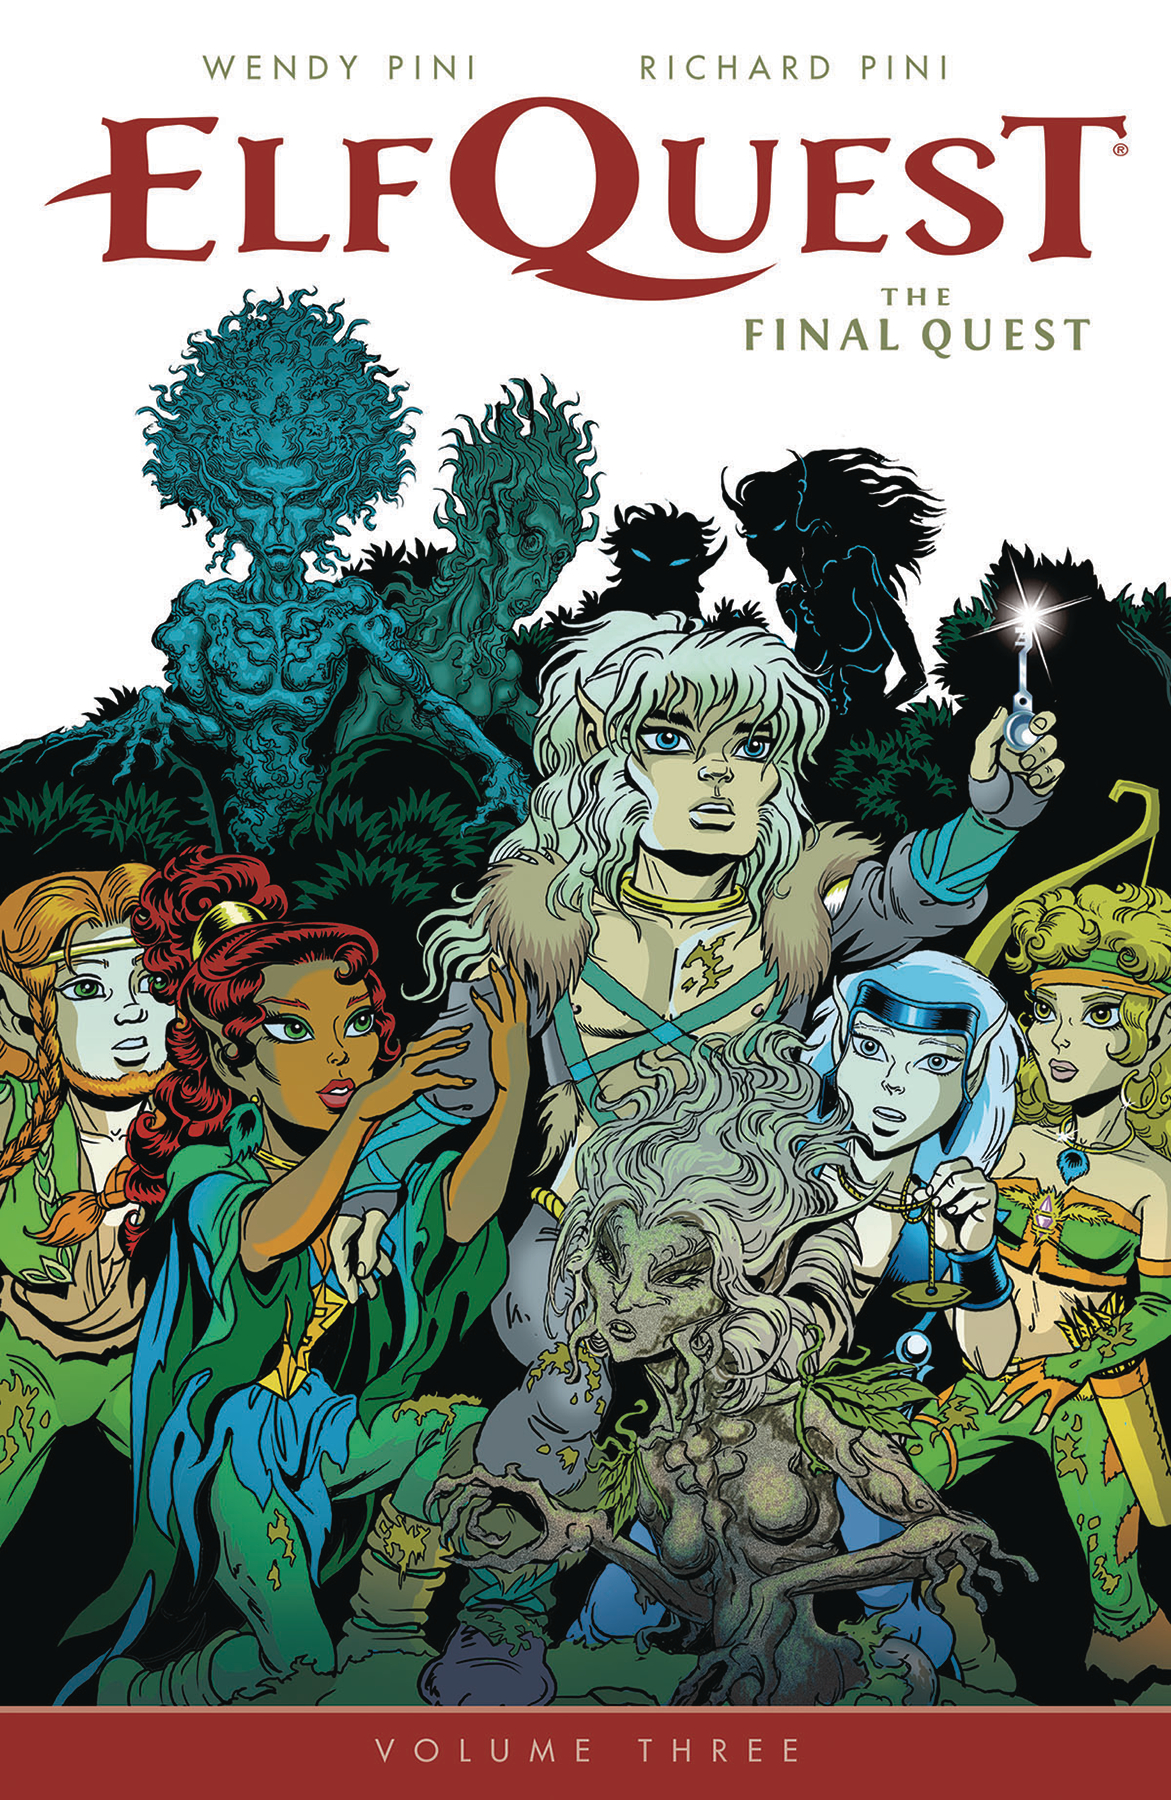 ELFQUEST FINAL QUEST TP VOL 03 (FEB170065)